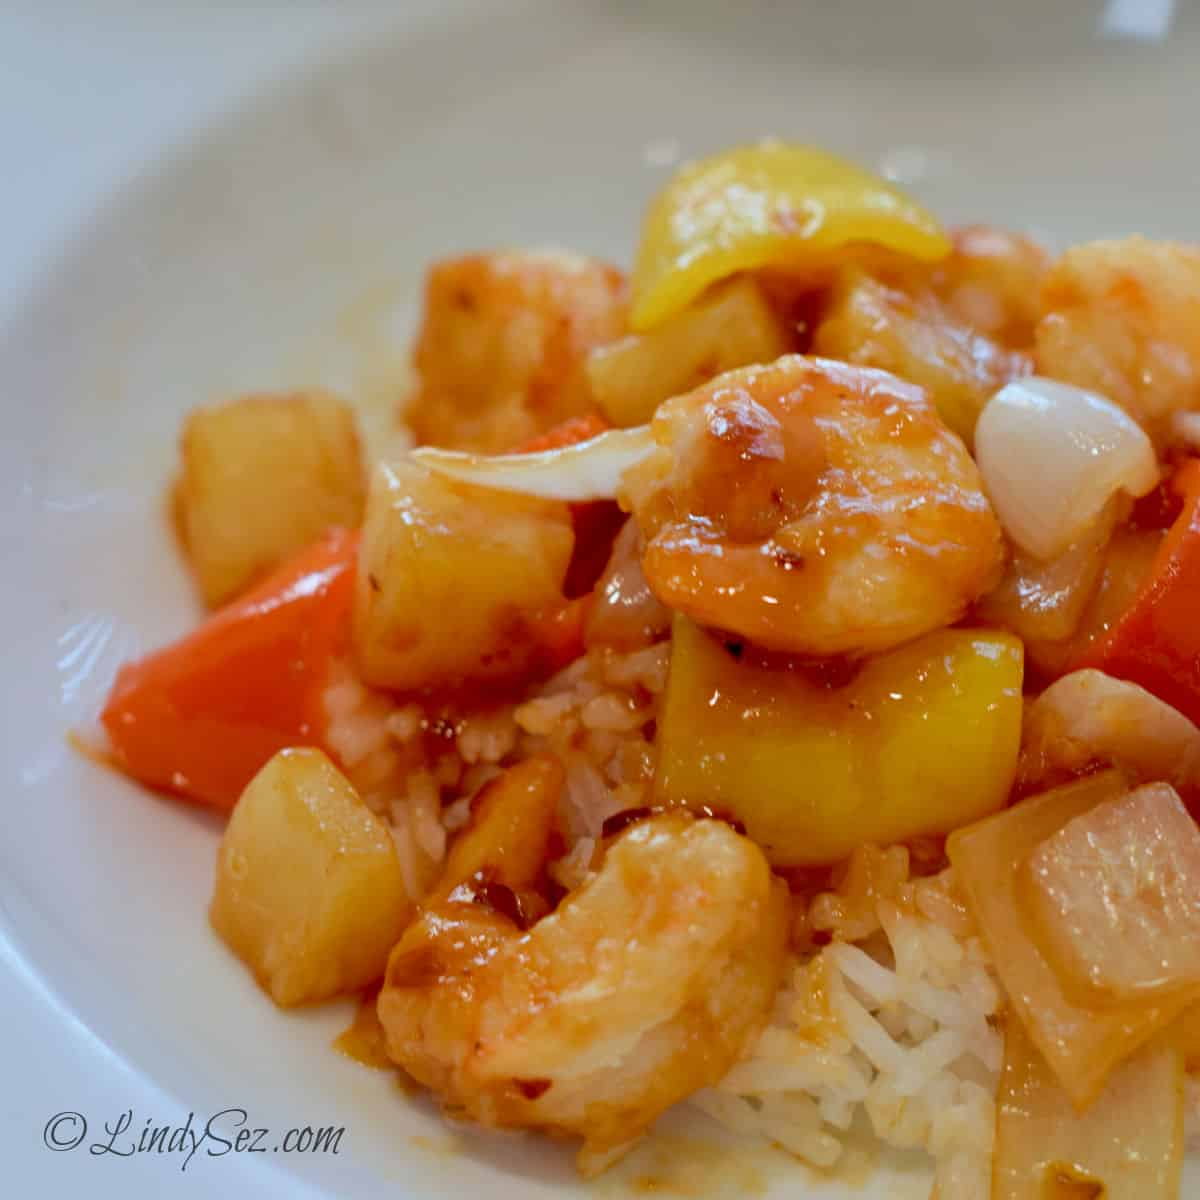 The final dish of easy homemade spicy sweet and sour shrimp.